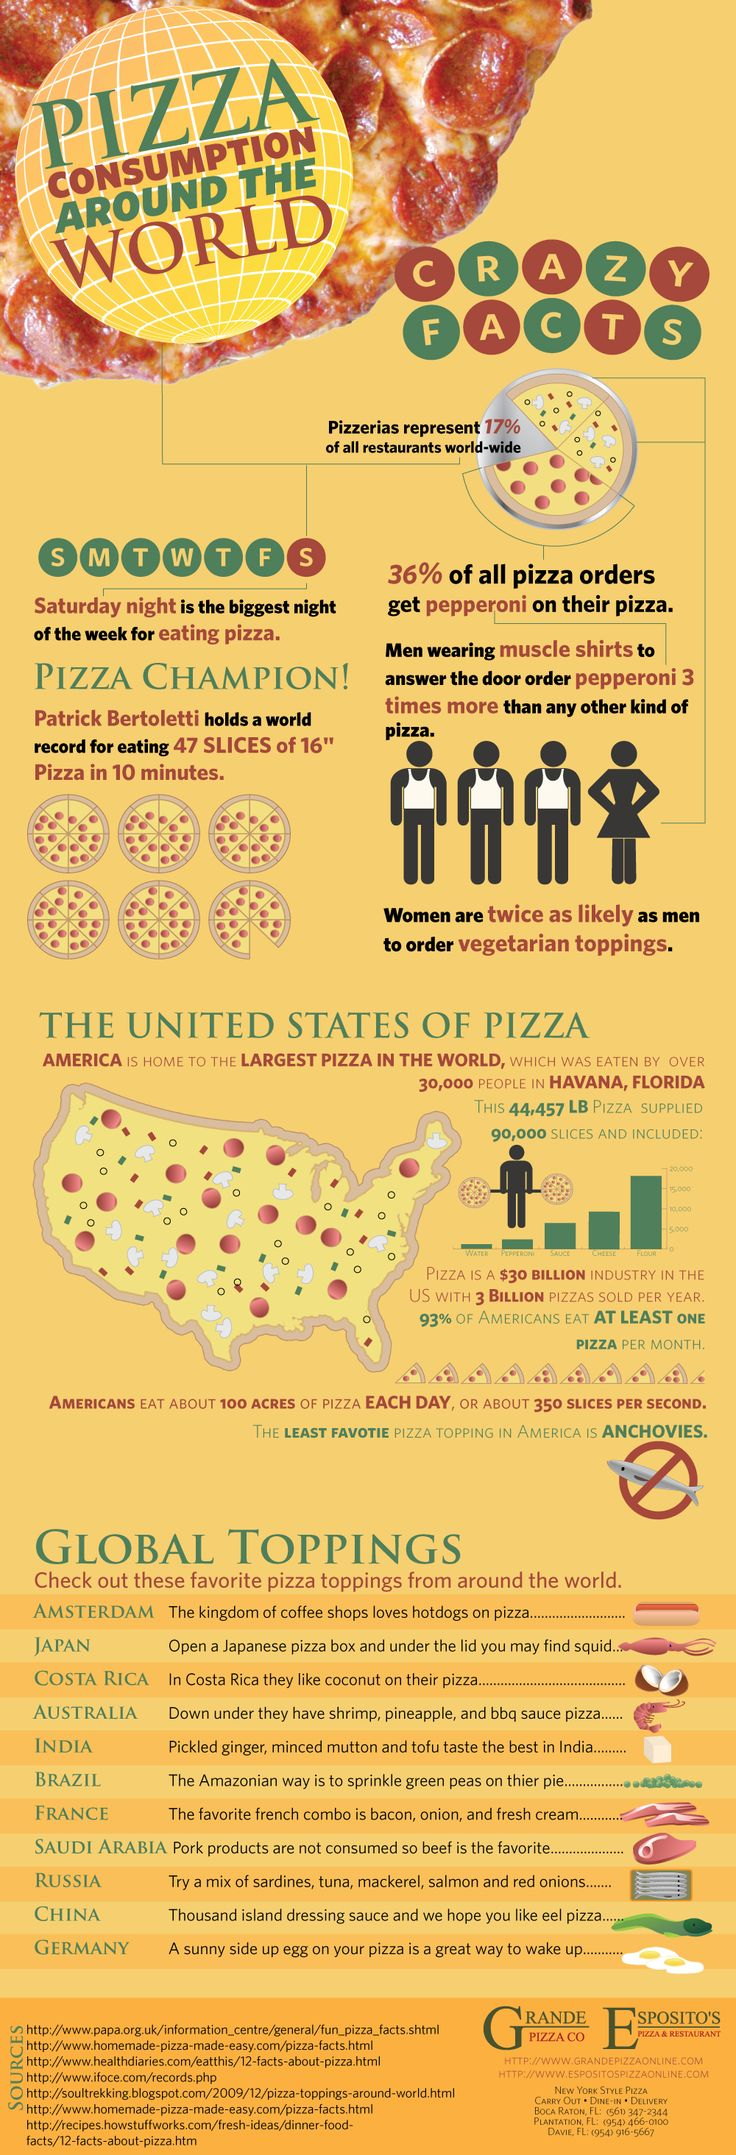 Infographic: Pizza Toppings Around The World - The factoid I found most interesting was the number of men wearing 'muscle shirts' who order pepperoni over other pizzas.    No, I've never done that. Then again, I don't really do pepperoni, so perhaps it's a cause-n-effect thingie?-)